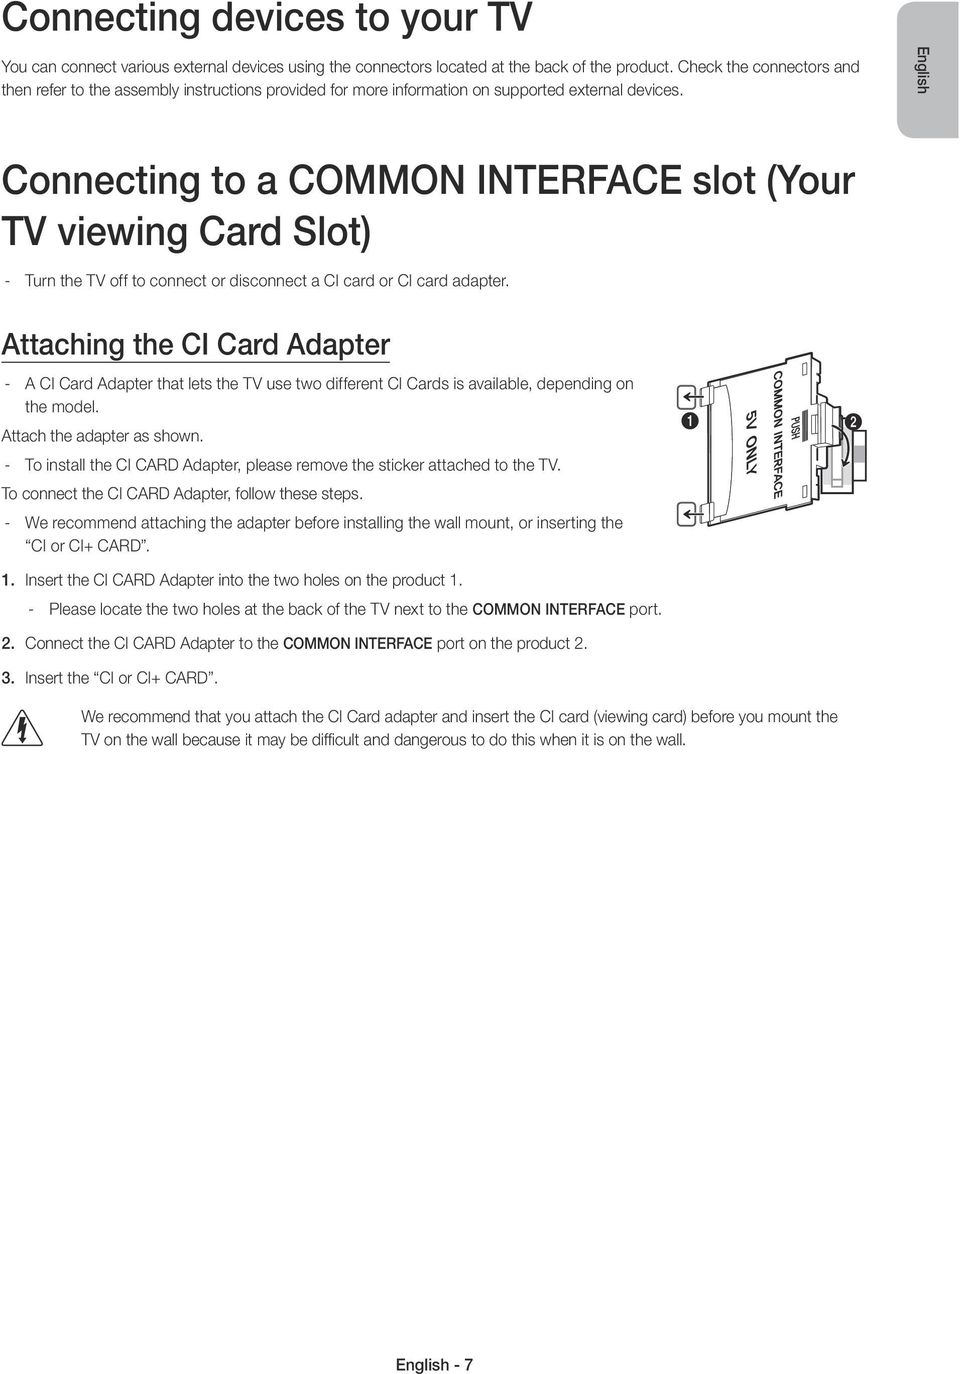 English Connecting to a COMMON INTERFACE slot (Your TV viewing Card Slot) Turn the TV off to connect or disconnect a CI card or CI card adapter.